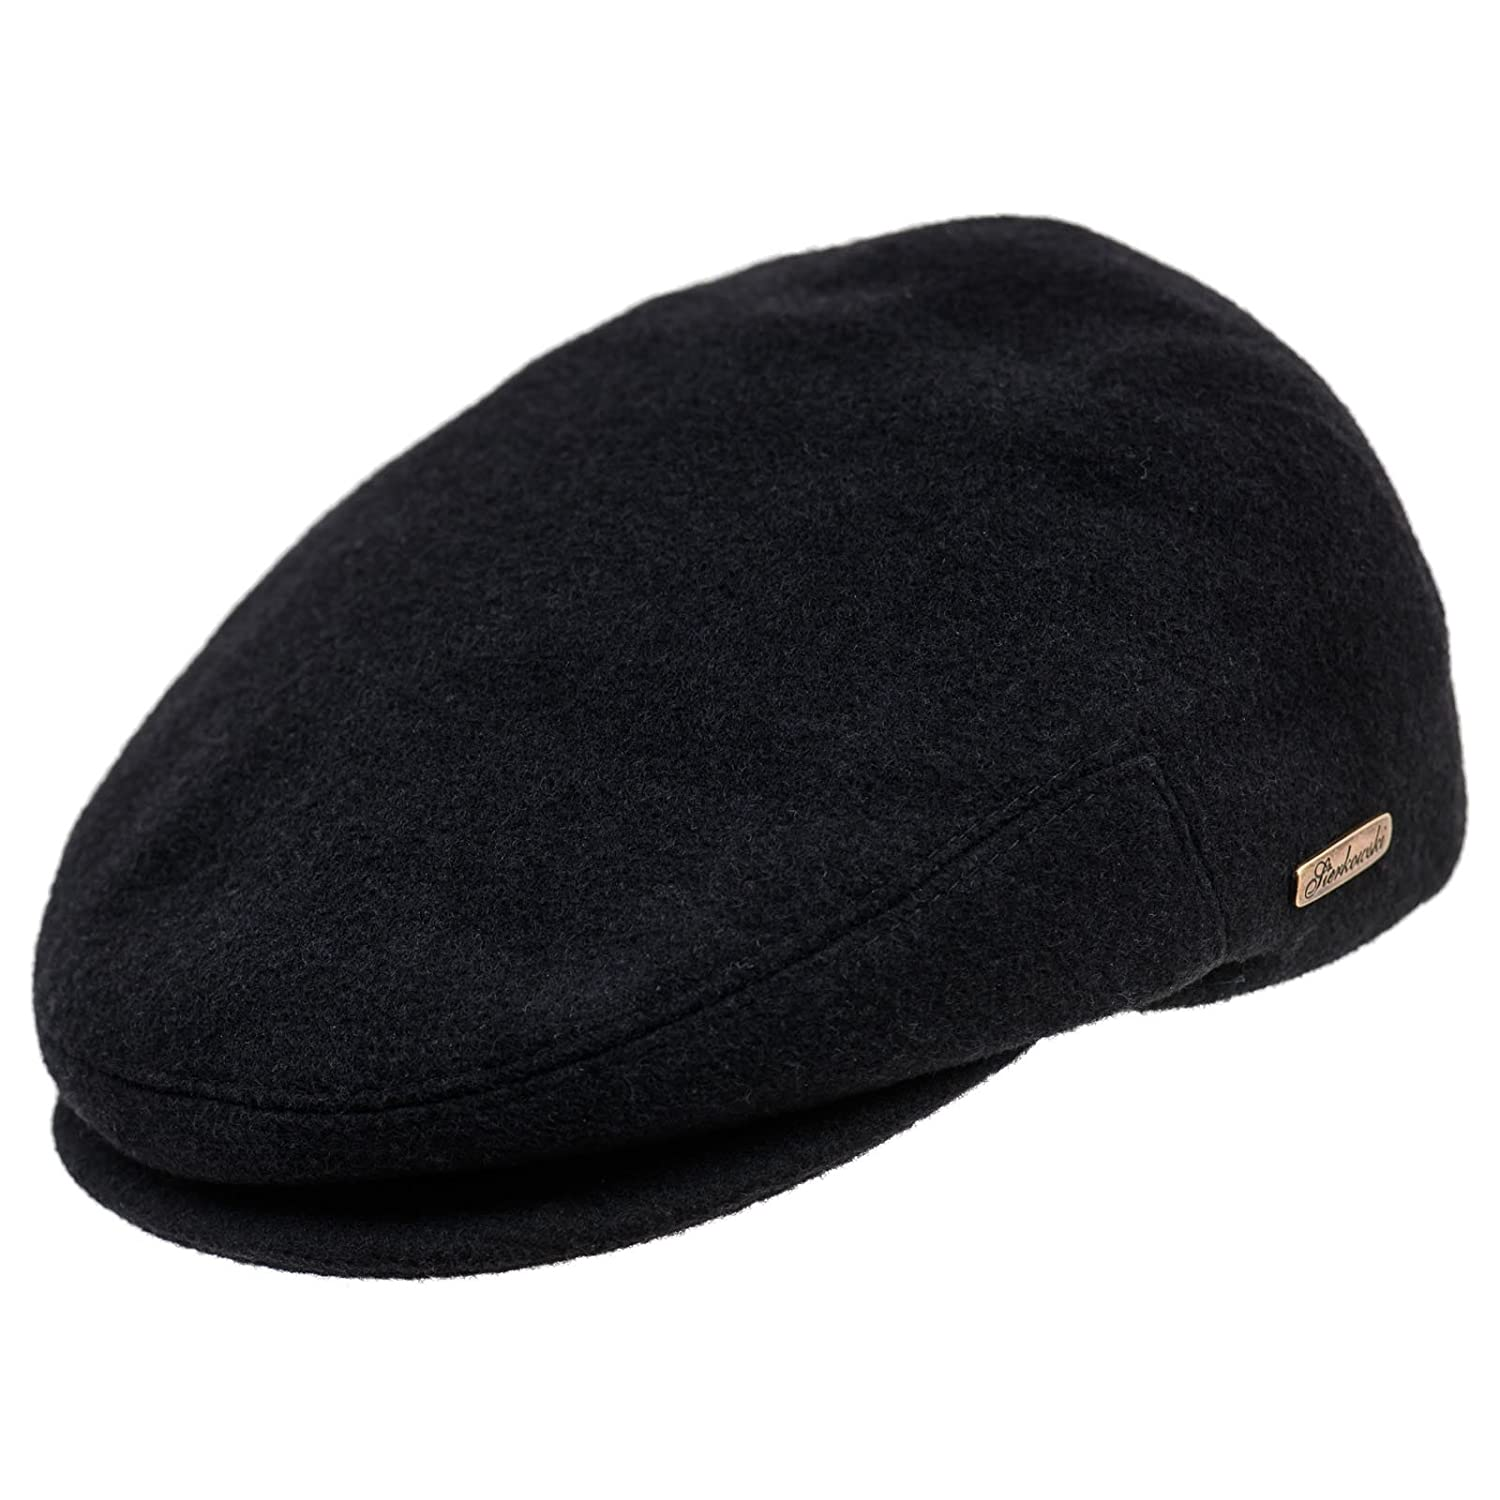 Sterkowski Wool Petersham Traditional Ivy League Snapbill Flat Cap CZX-AZG-M00US 8 1/8 $P